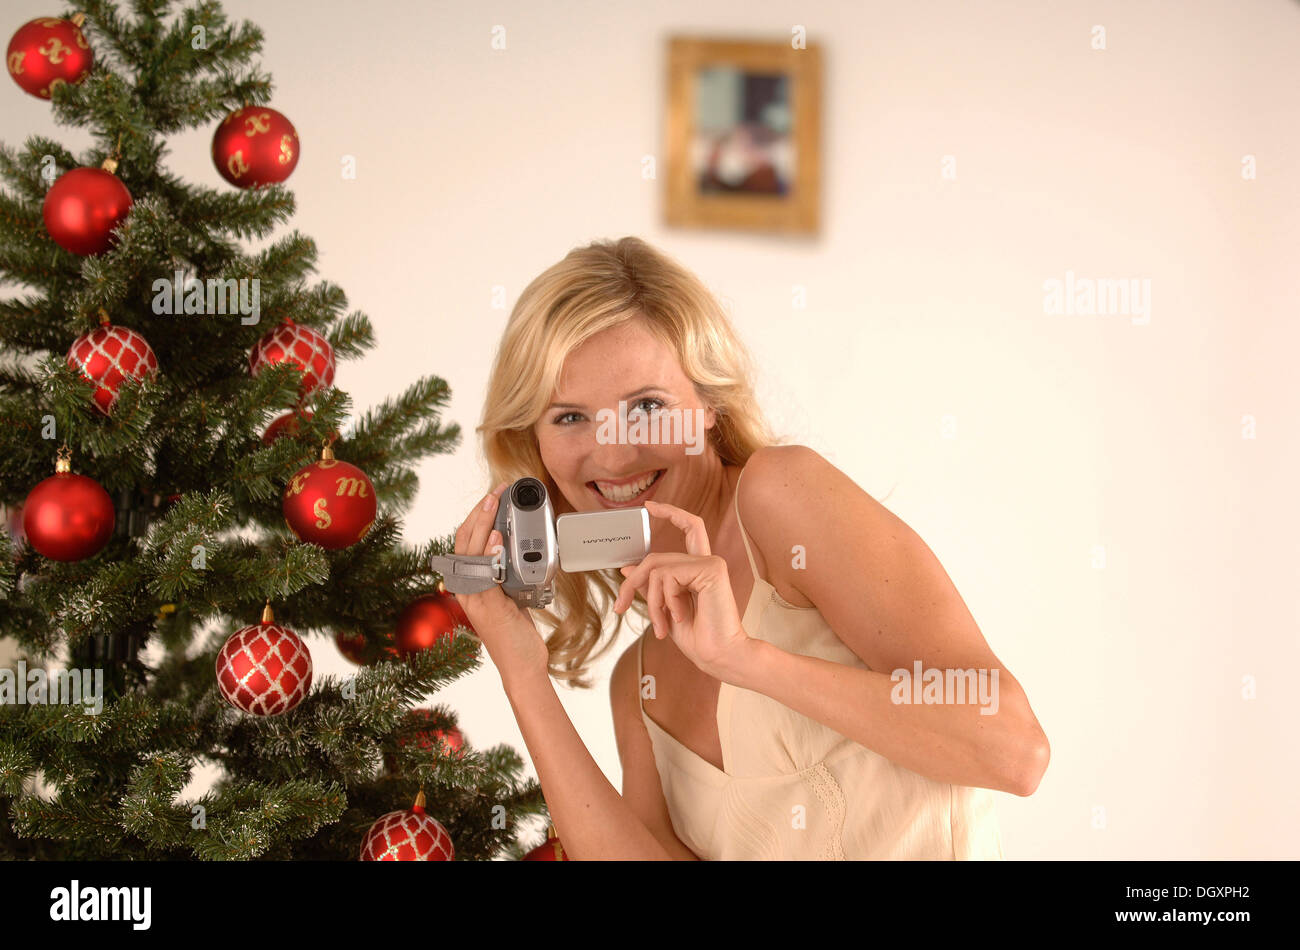 Blonde woman, 20-30, wearing an evening dress while filming with a camcorder in front of a Christmas tree Stock Photo